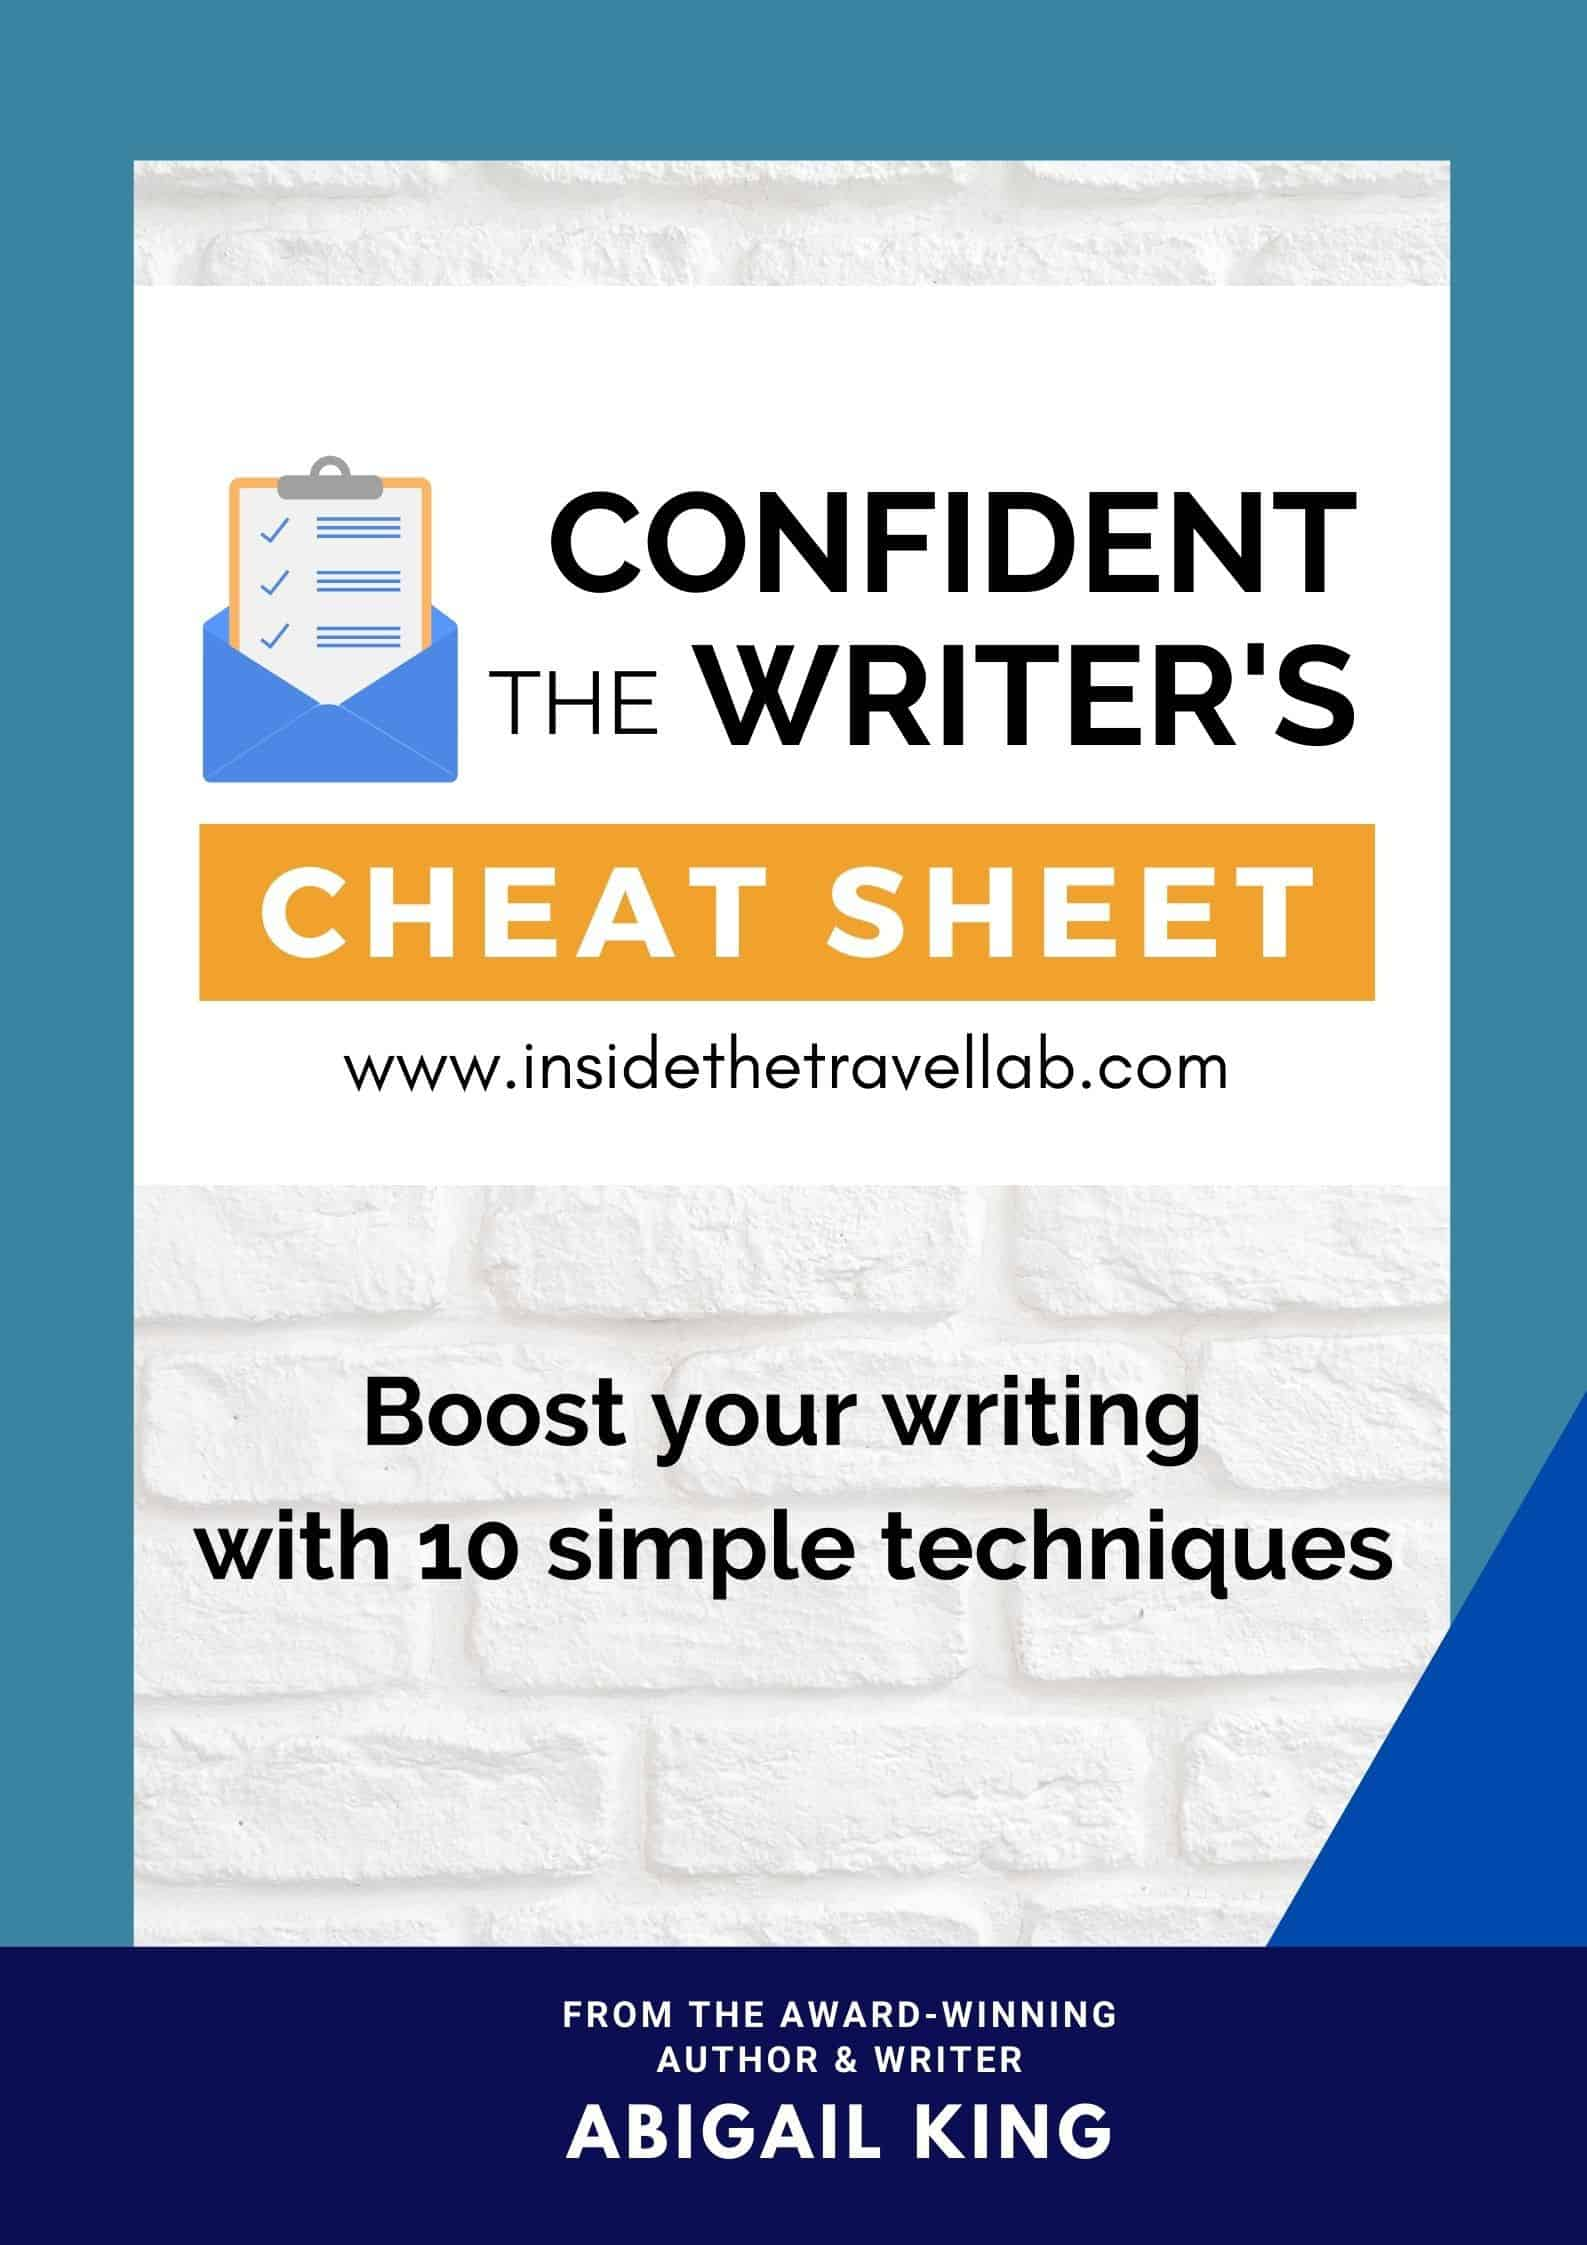 Confident Writer's Cheat Sheet Cover Image